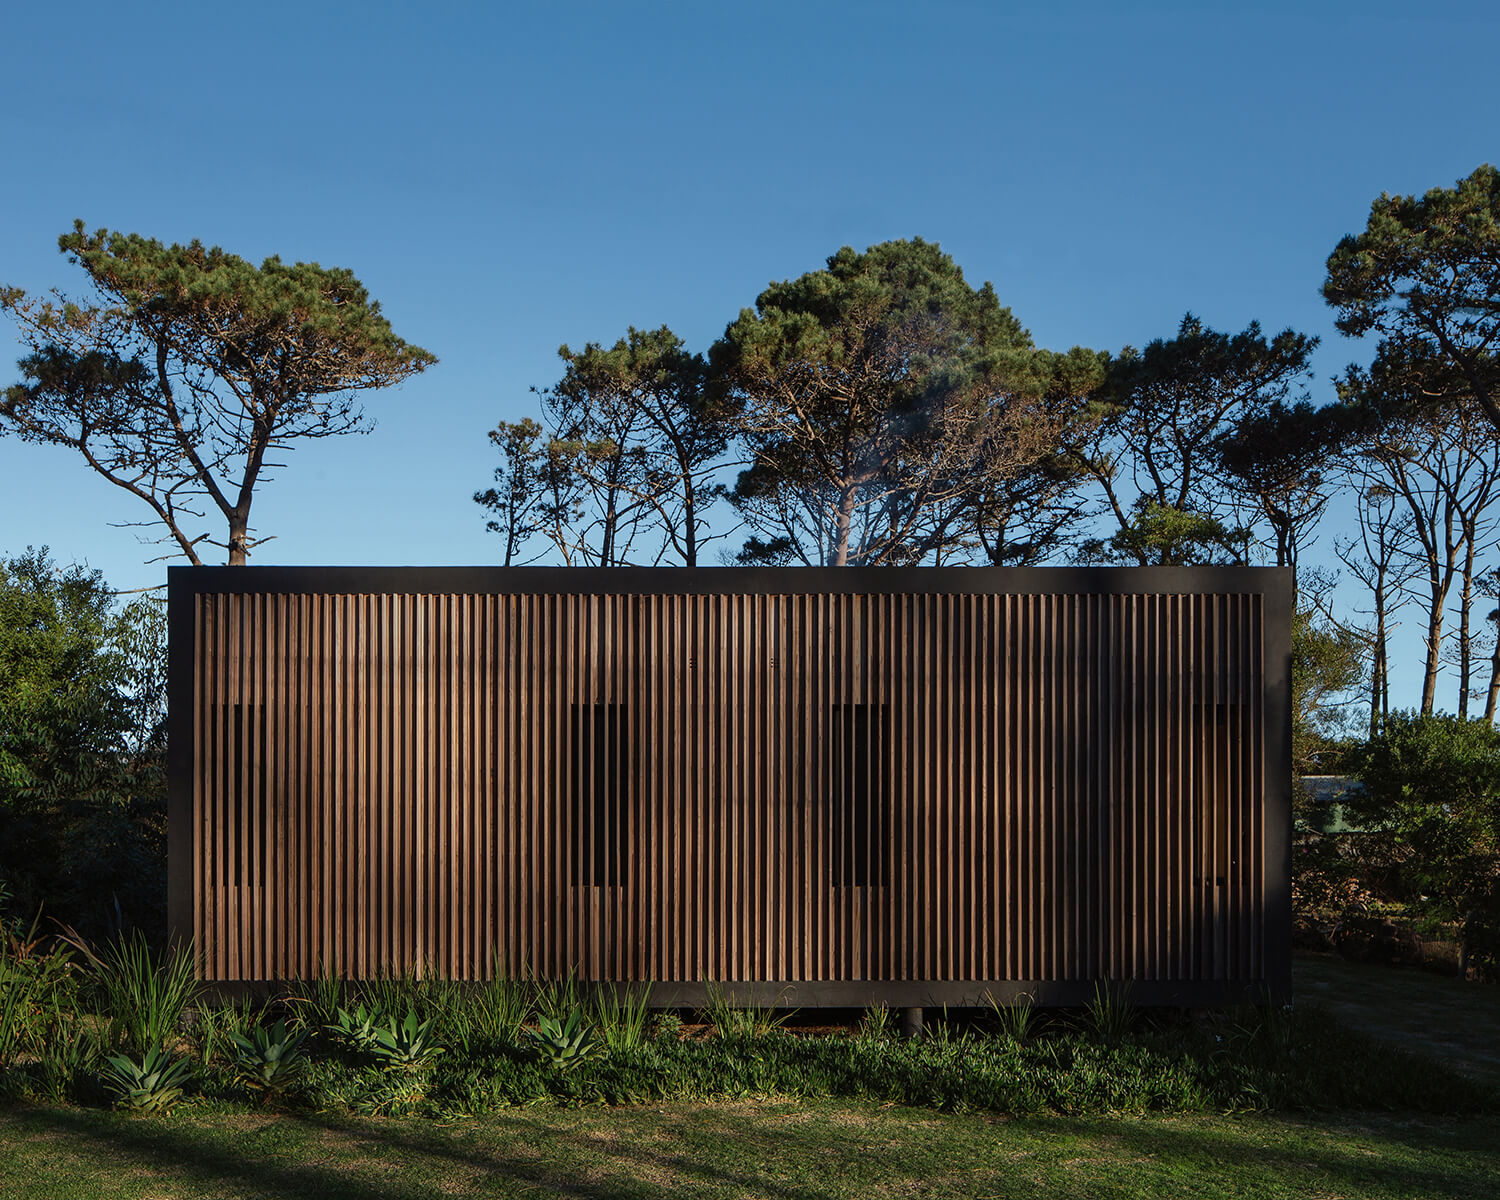 Exterior view of the cabin showing the facade covered in wood slats, which acts as a privacy screen